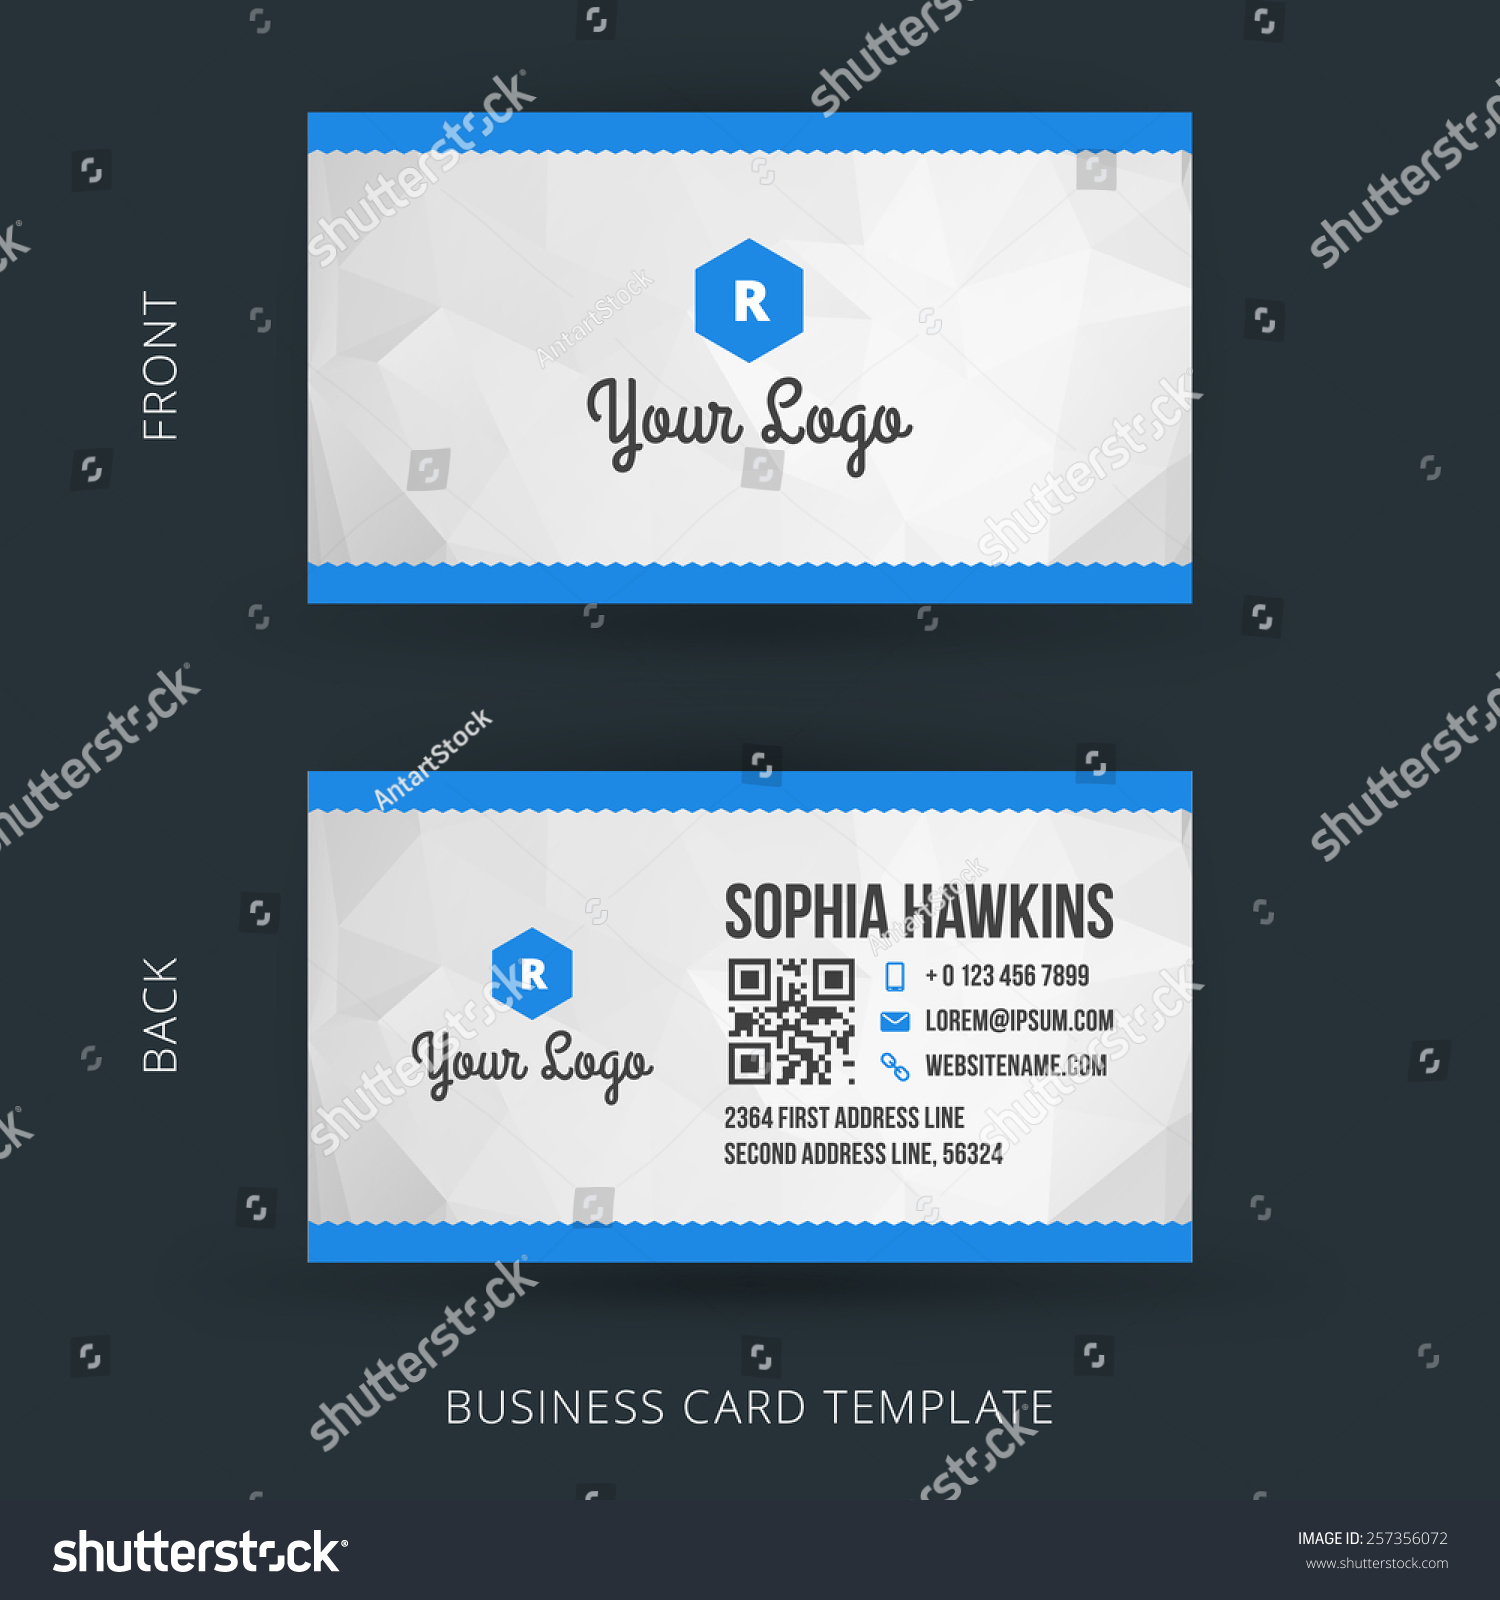 Business Card Template For Google Docs